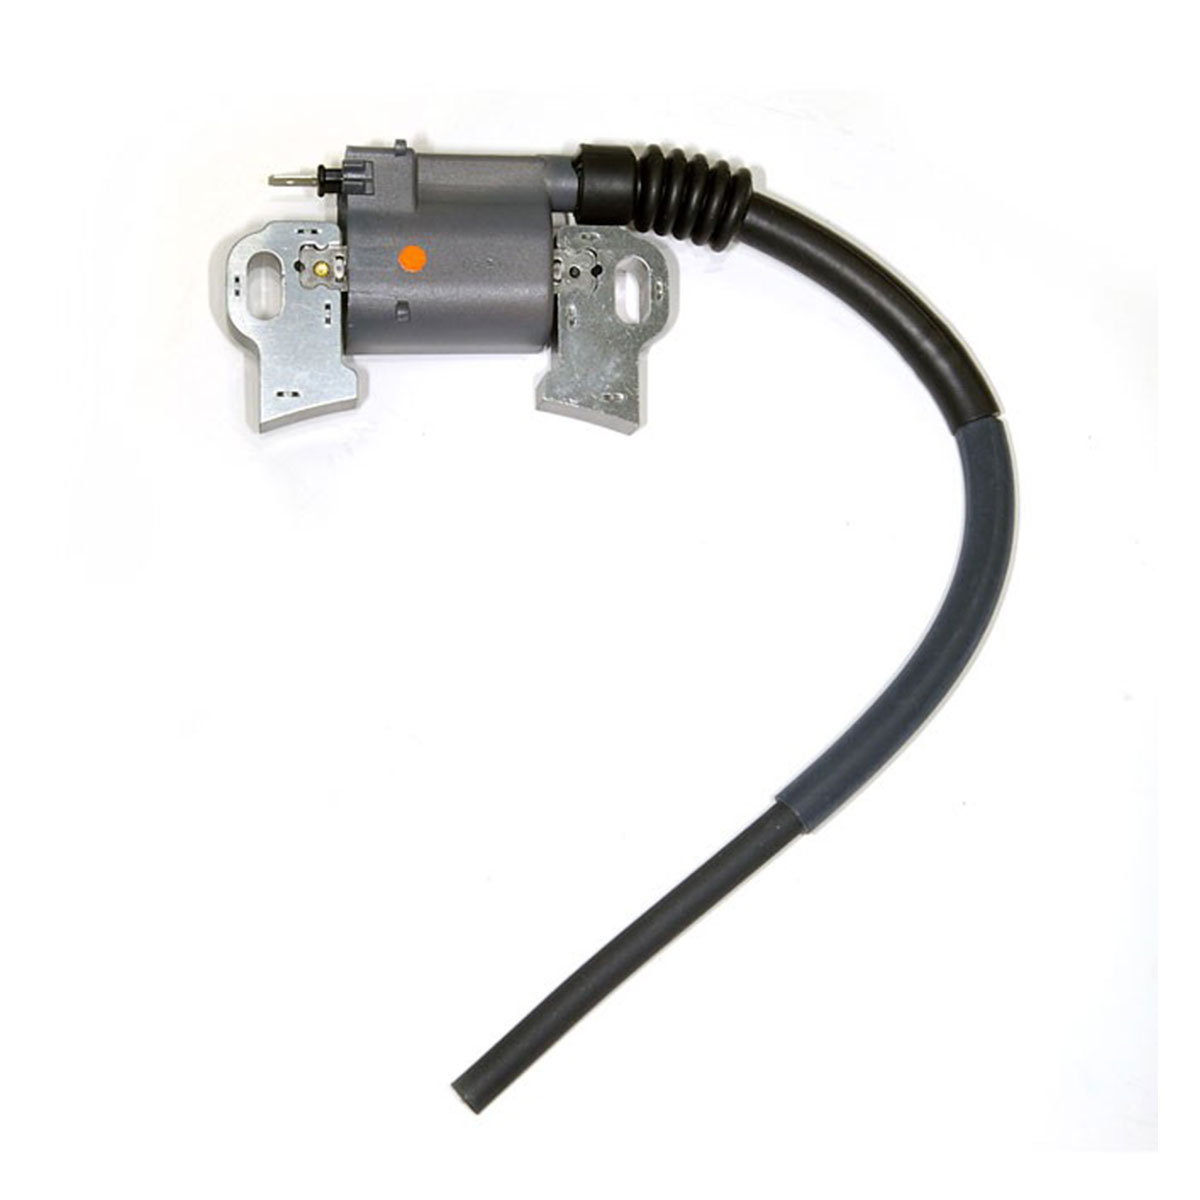 Honda Ignition Coil embly 30500-ZF6-W03 | Power Mower Sales on